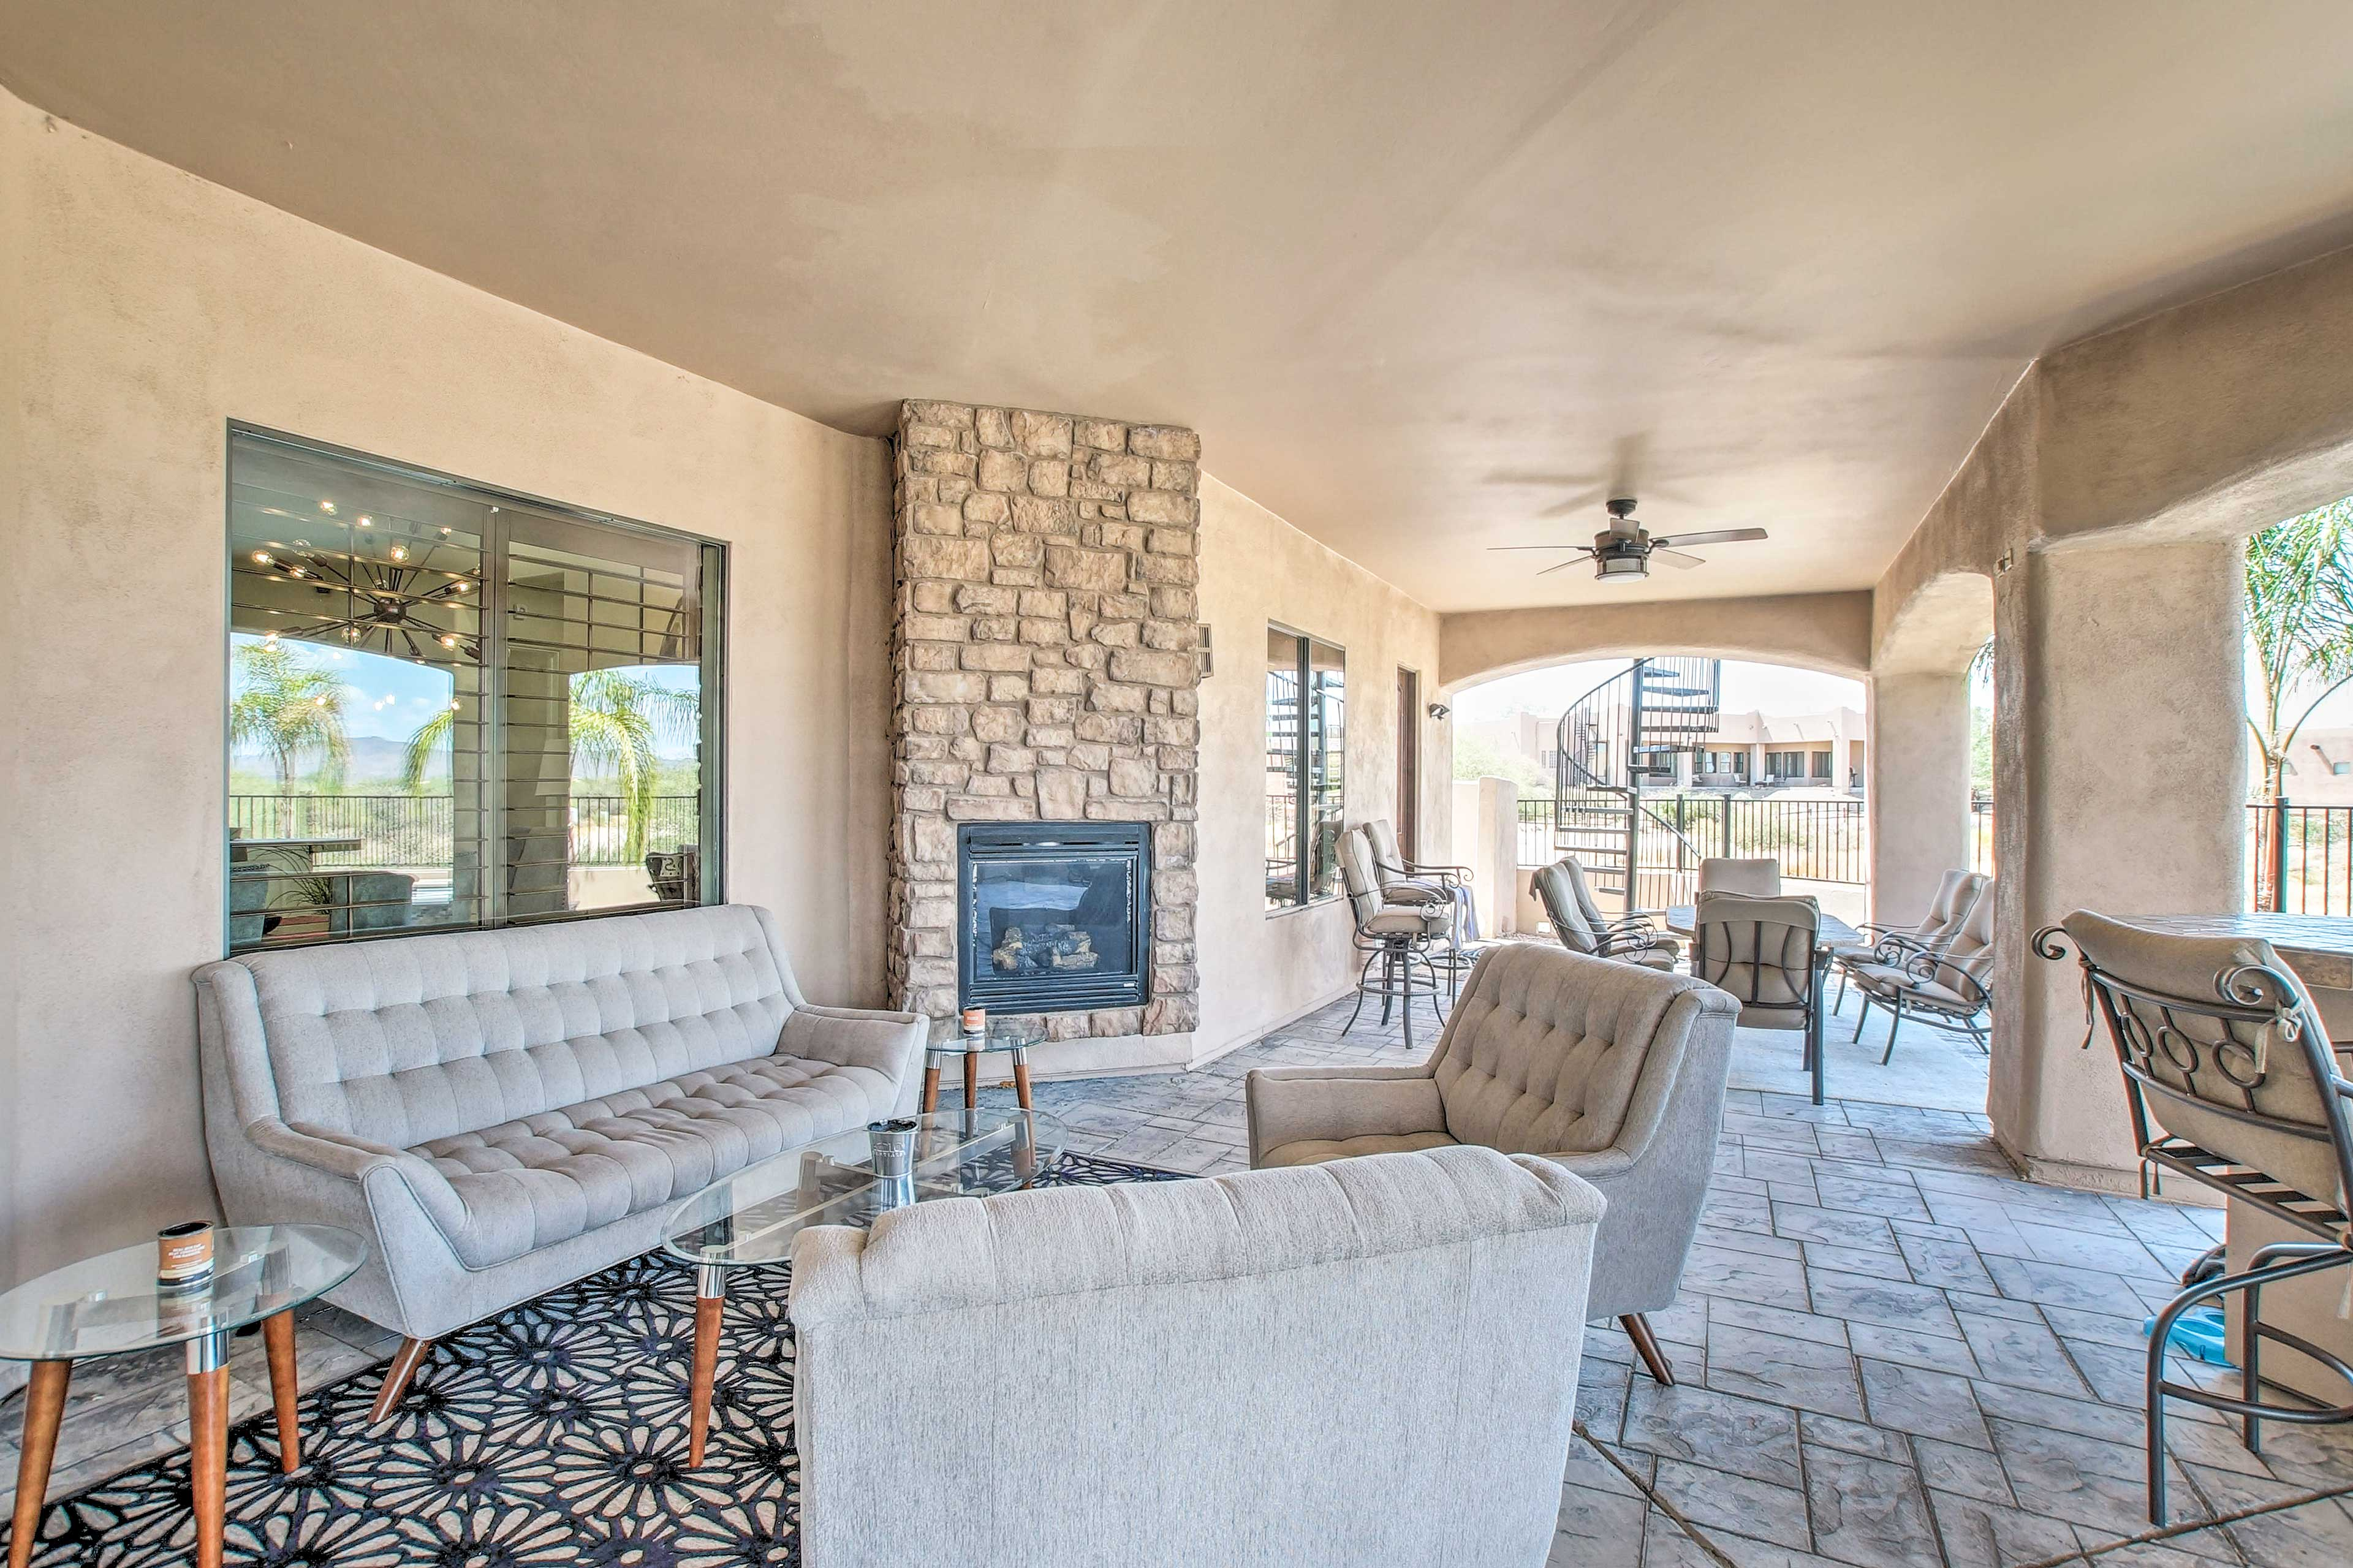 There's ample seating around the outdoor fireplace.